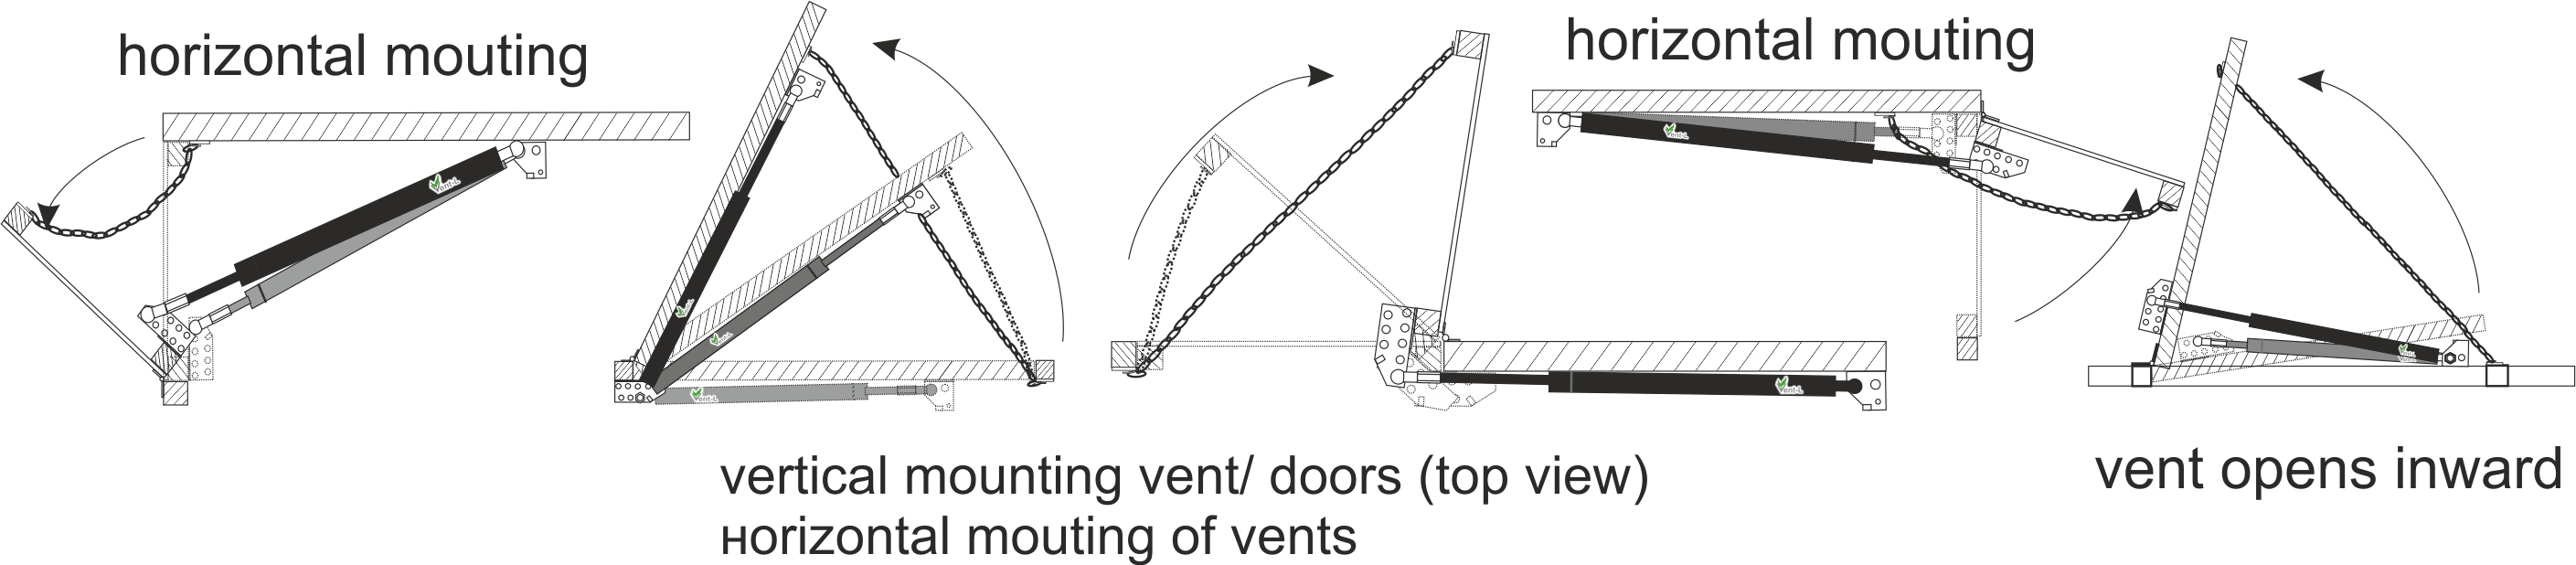 Vent-L Automatic Vent Opener N03 Opening Temperature 24-32°C(75-90°F) Load up to 30kg(66lb) for Window/Doors,openable surface area up to 0.5 m2 (6 ft2), of Greenhouse